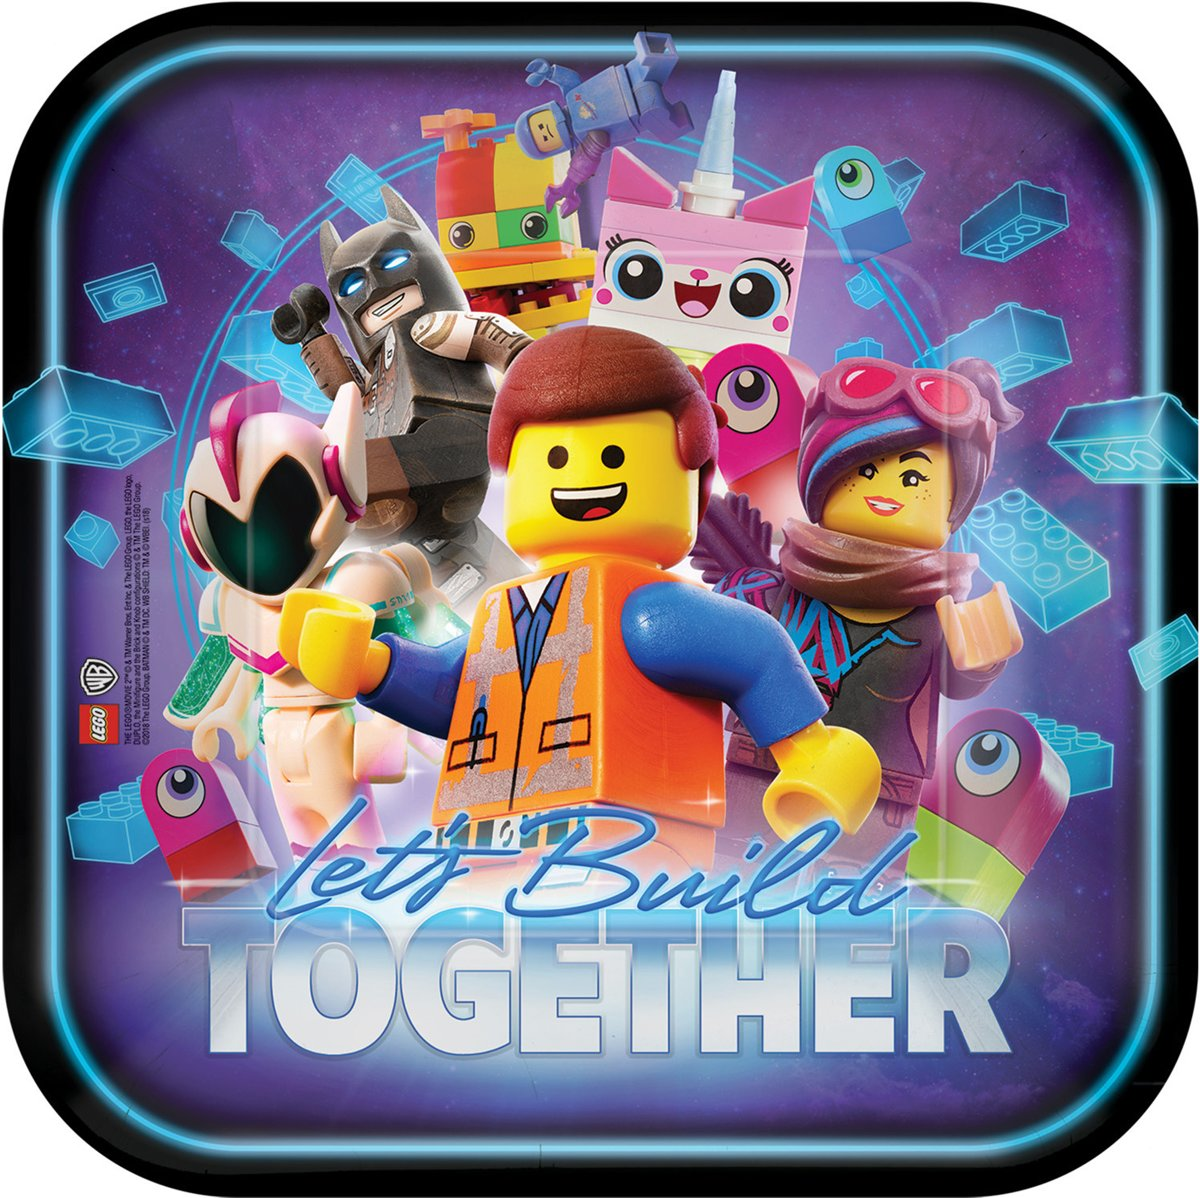 Borden Lego movie 2